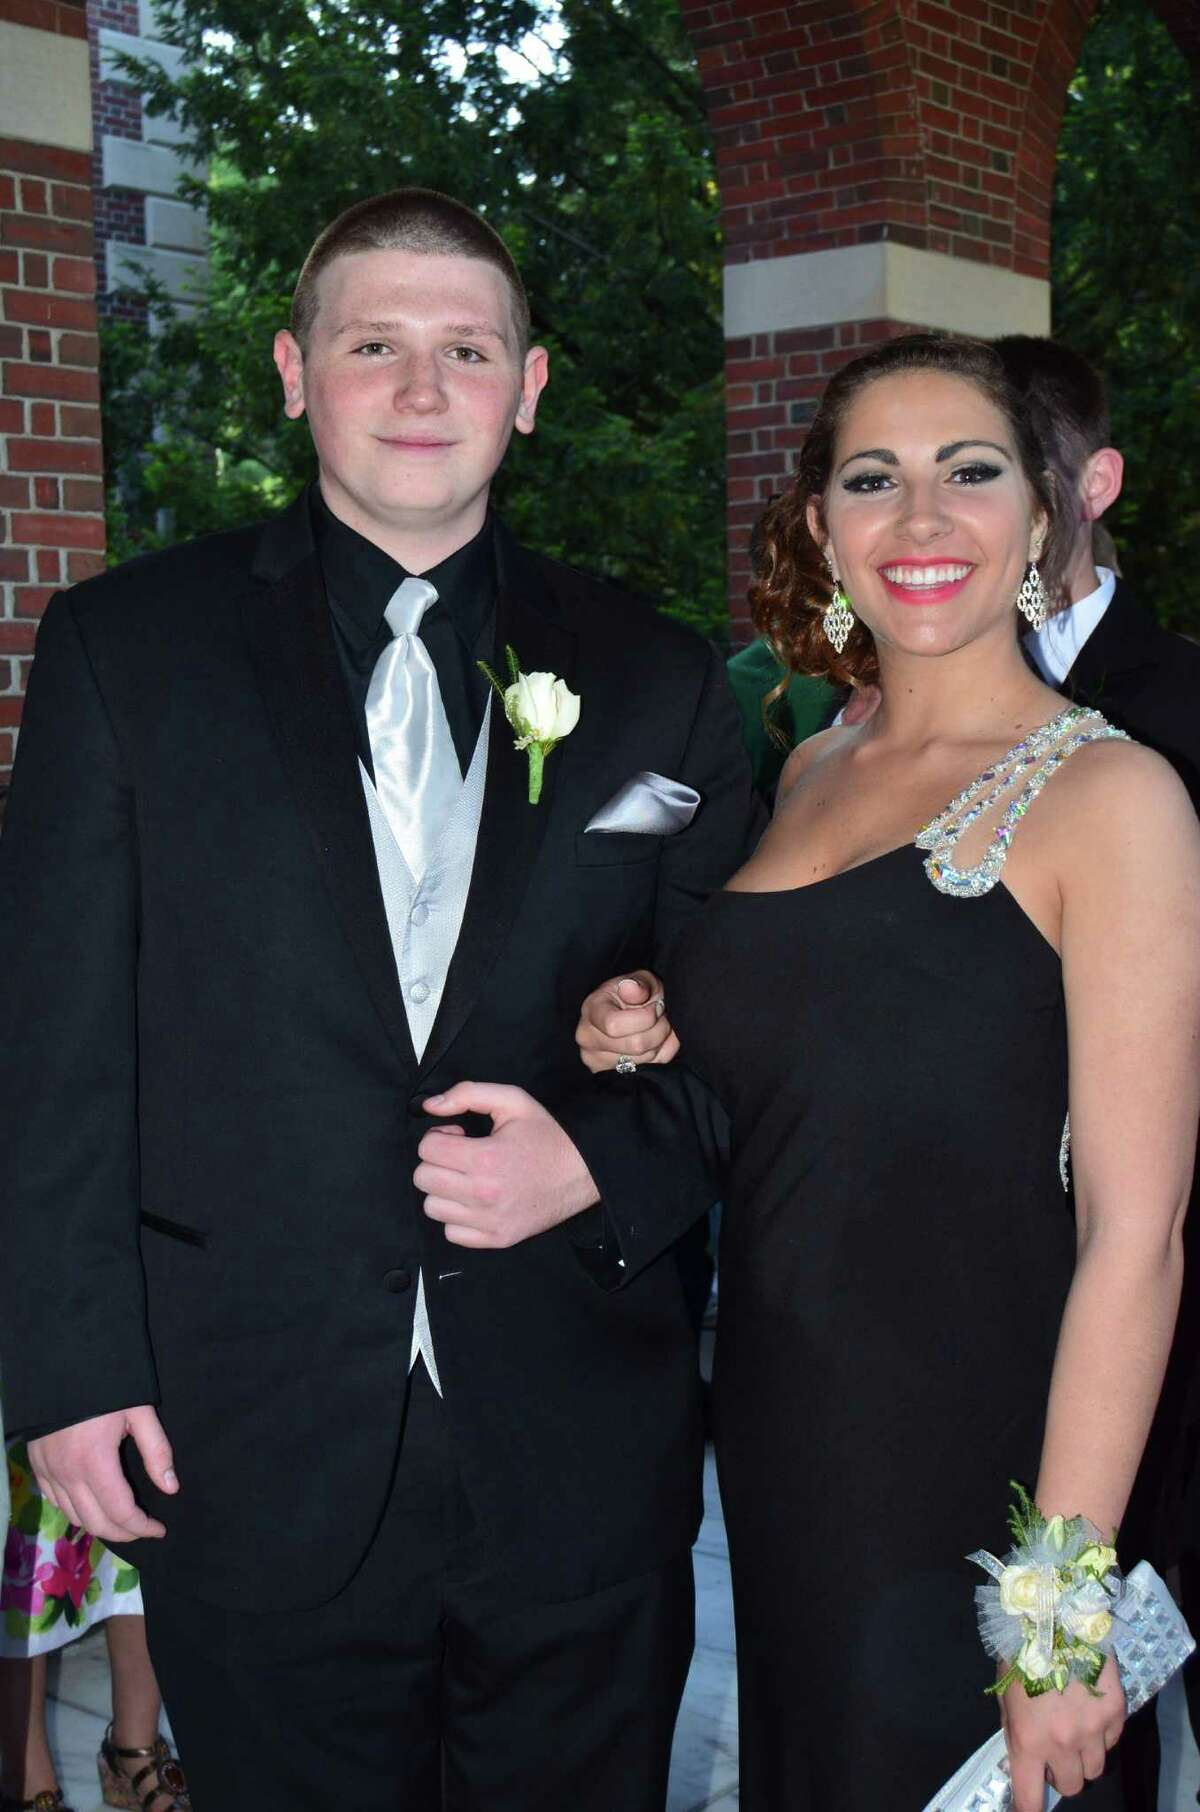 Were you Seen at the Burnt Hills-Ballston Lake Junior/Senior Prom at the Hall of Springs in Saratoga Springs on Friday, May 17, 2013?